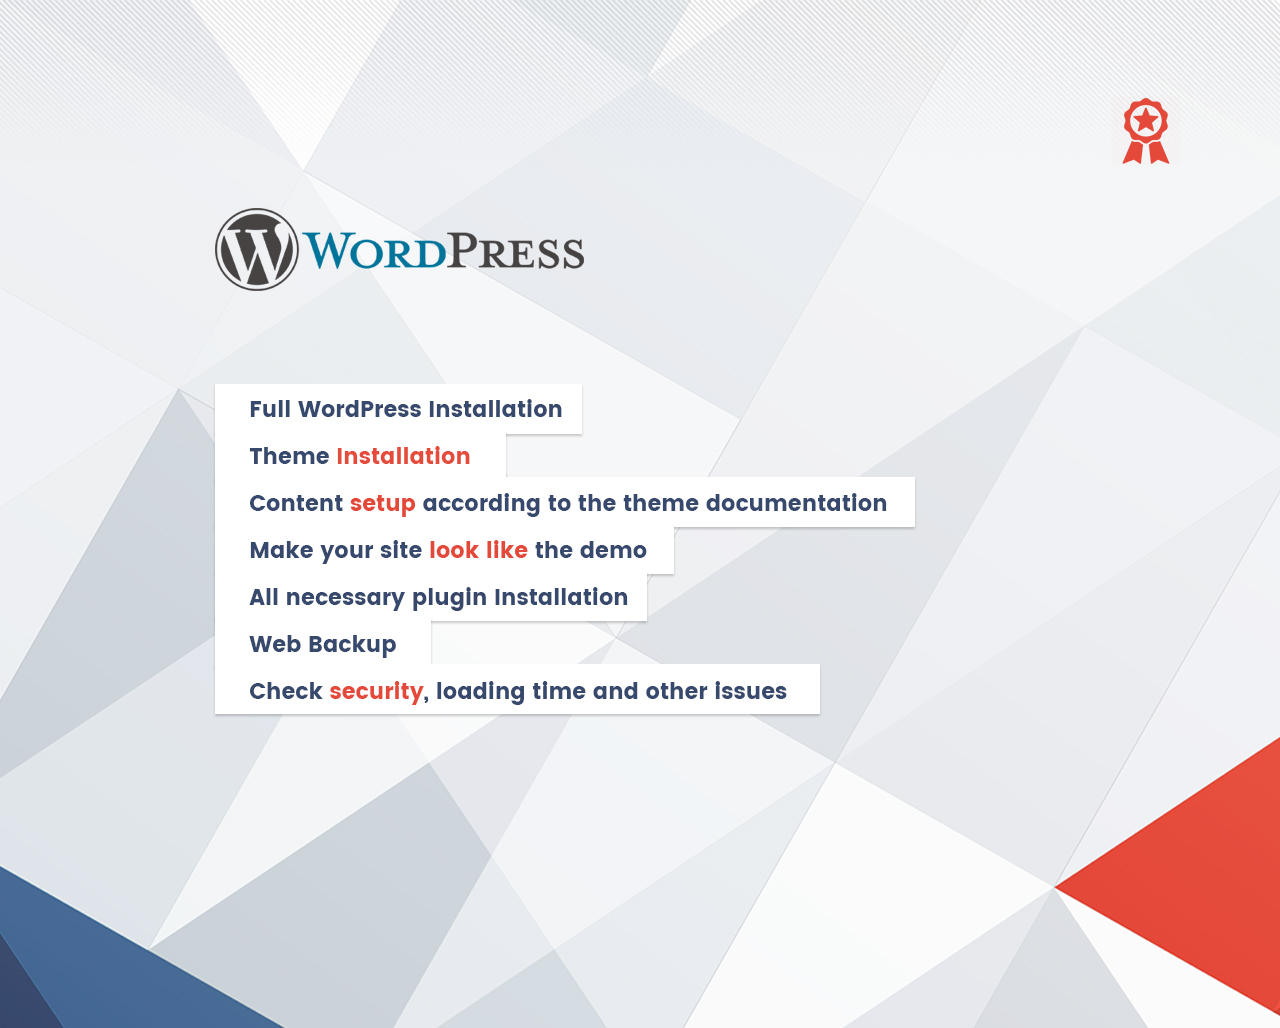 Complete WordPress Installation (Demo Setup, Logo, Plugins, SEO, Security & More) by themebeer - 101904